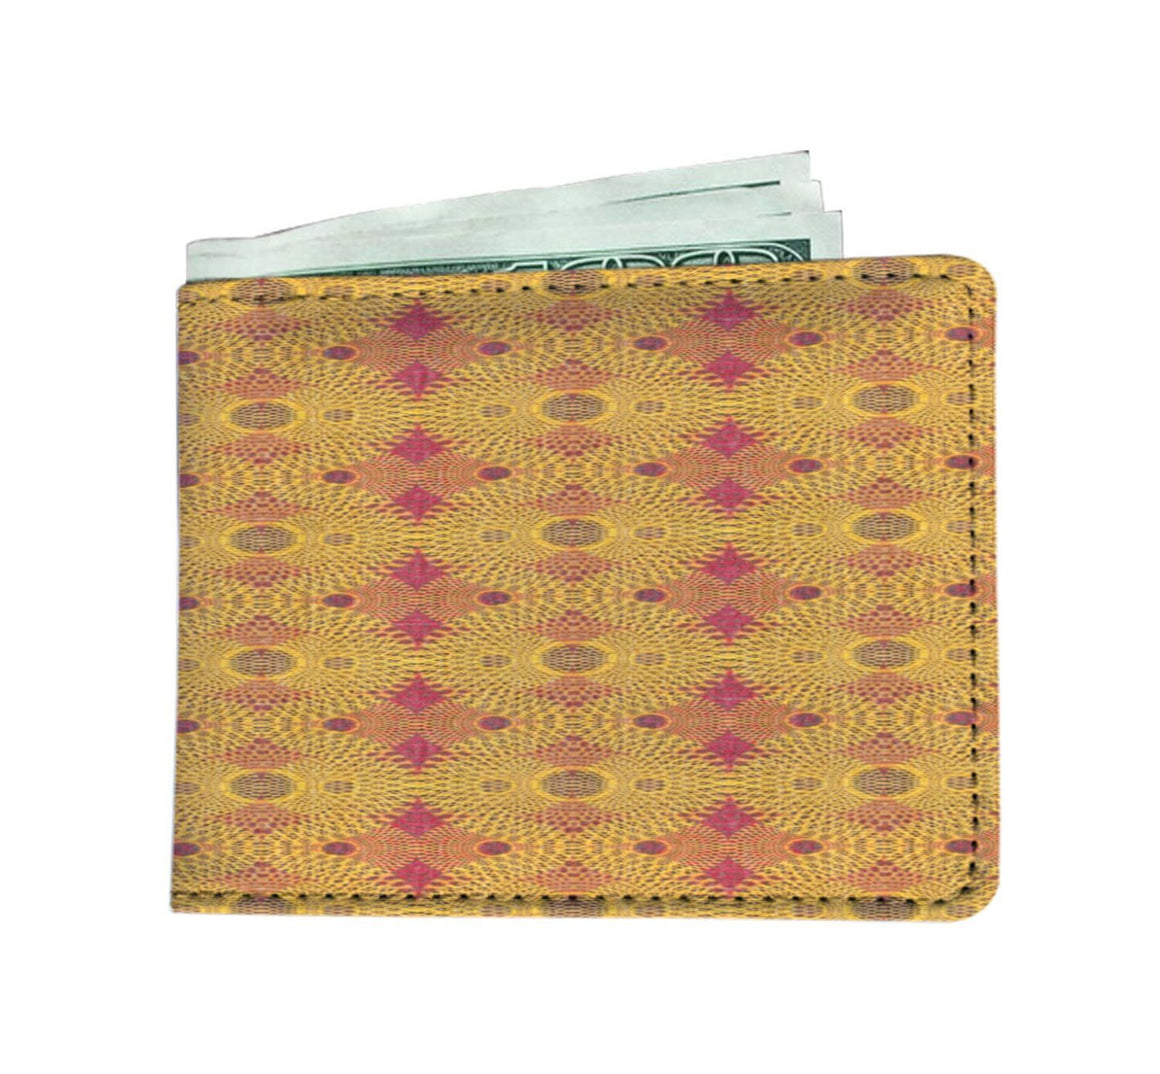 Sunburst Men's Wallet Mens Wallet